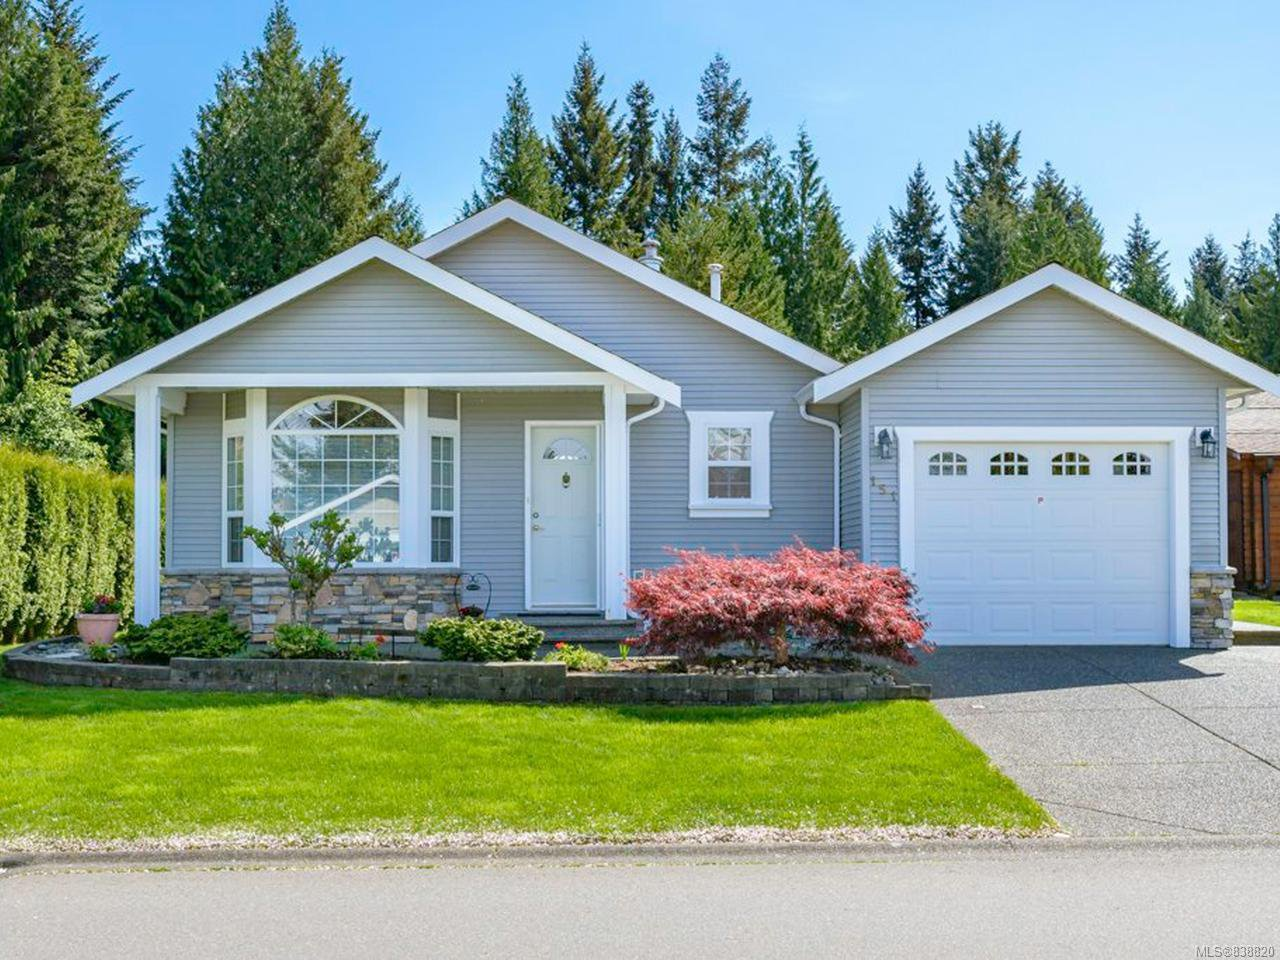 Main Photo: 151 4714 Muir Rd in COURTENAY: CV Courtenay East Manufactured Home for sale (Comox Valley)  : MLS®# 838820